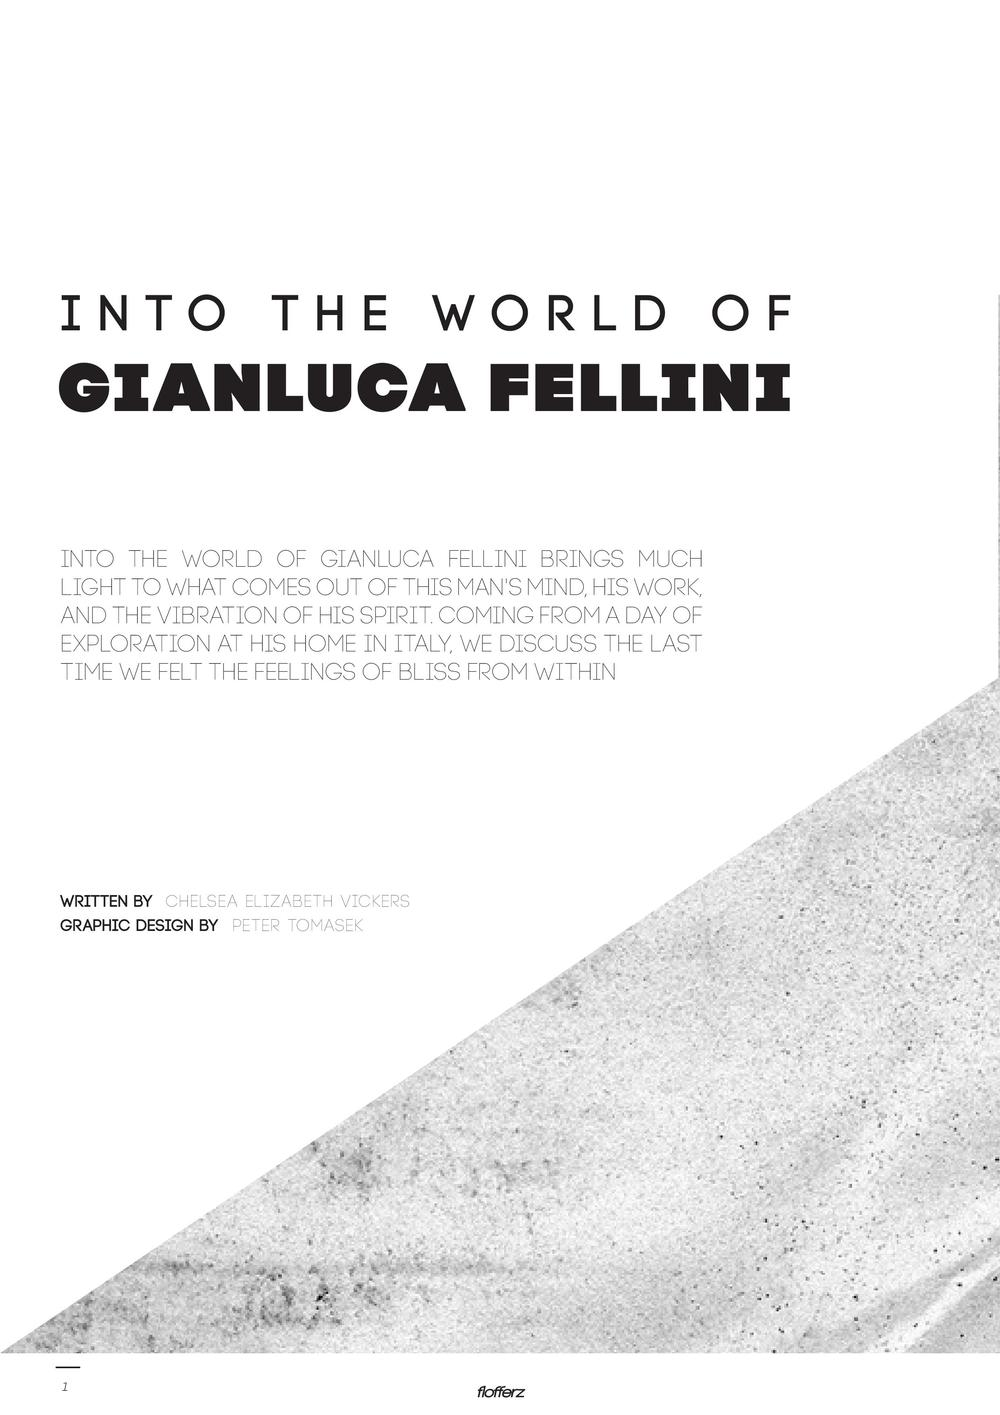 GIANLUCA FELLINI - 20:01:15 - INTERVIEW Into the world of Gianluca Fellini brings much light to what comes out of this man's mind, his work, and the vibration of his spirit. Coming from a day of exploration at his home in Italy, we discuss the last time we felt the feelings of bliss from within...